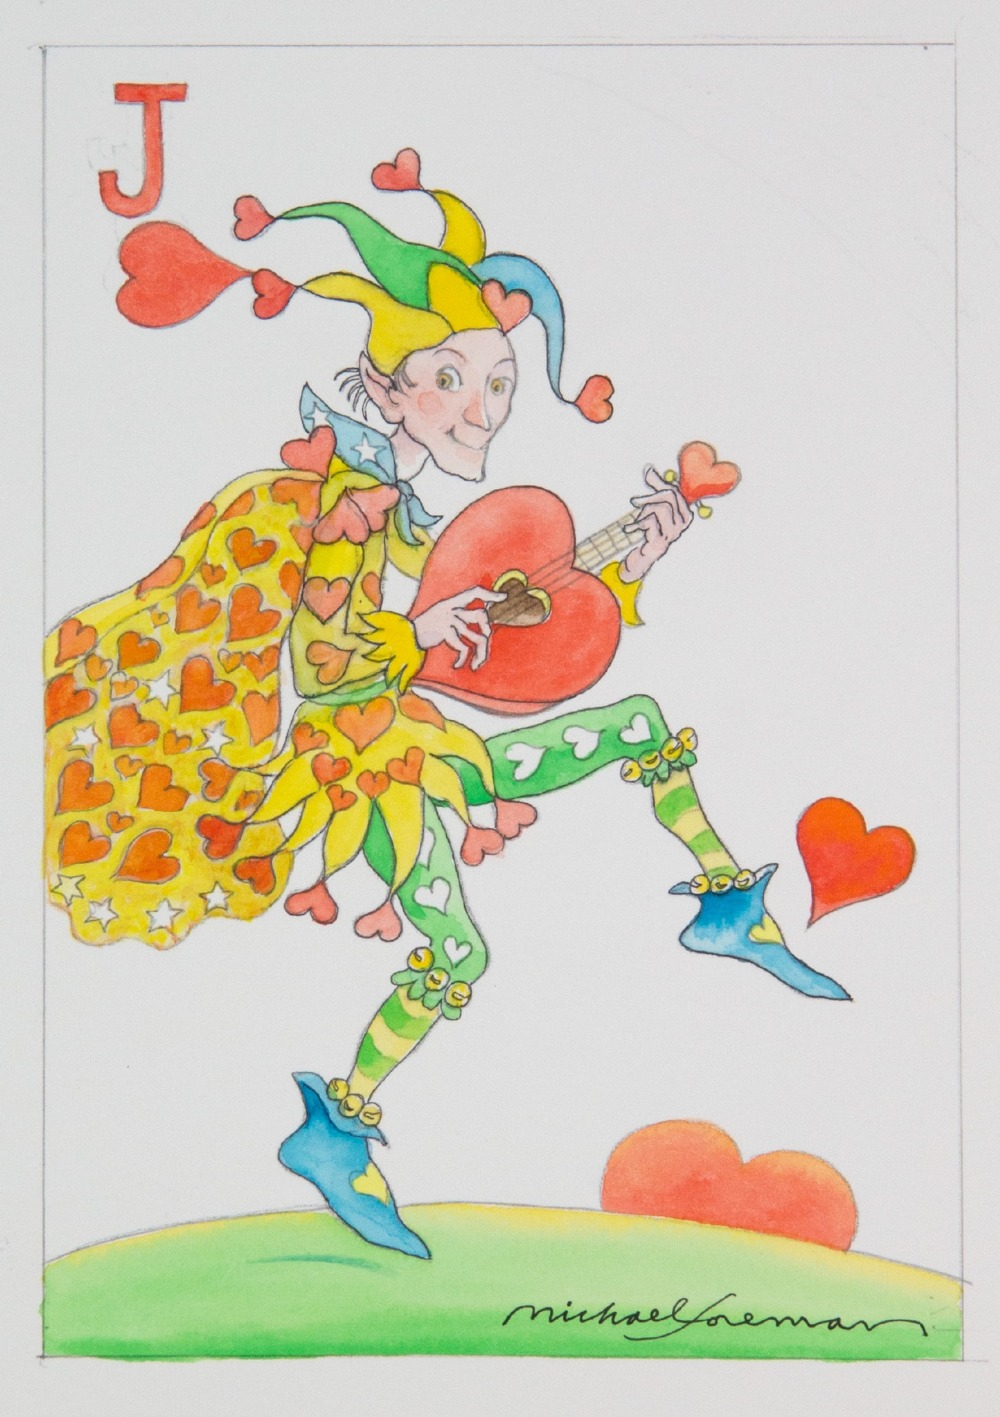 Michael Foreman (British). 'Jack of Hearts', watercolour on paper, signed. Image size 23.5 x 16.5cm.